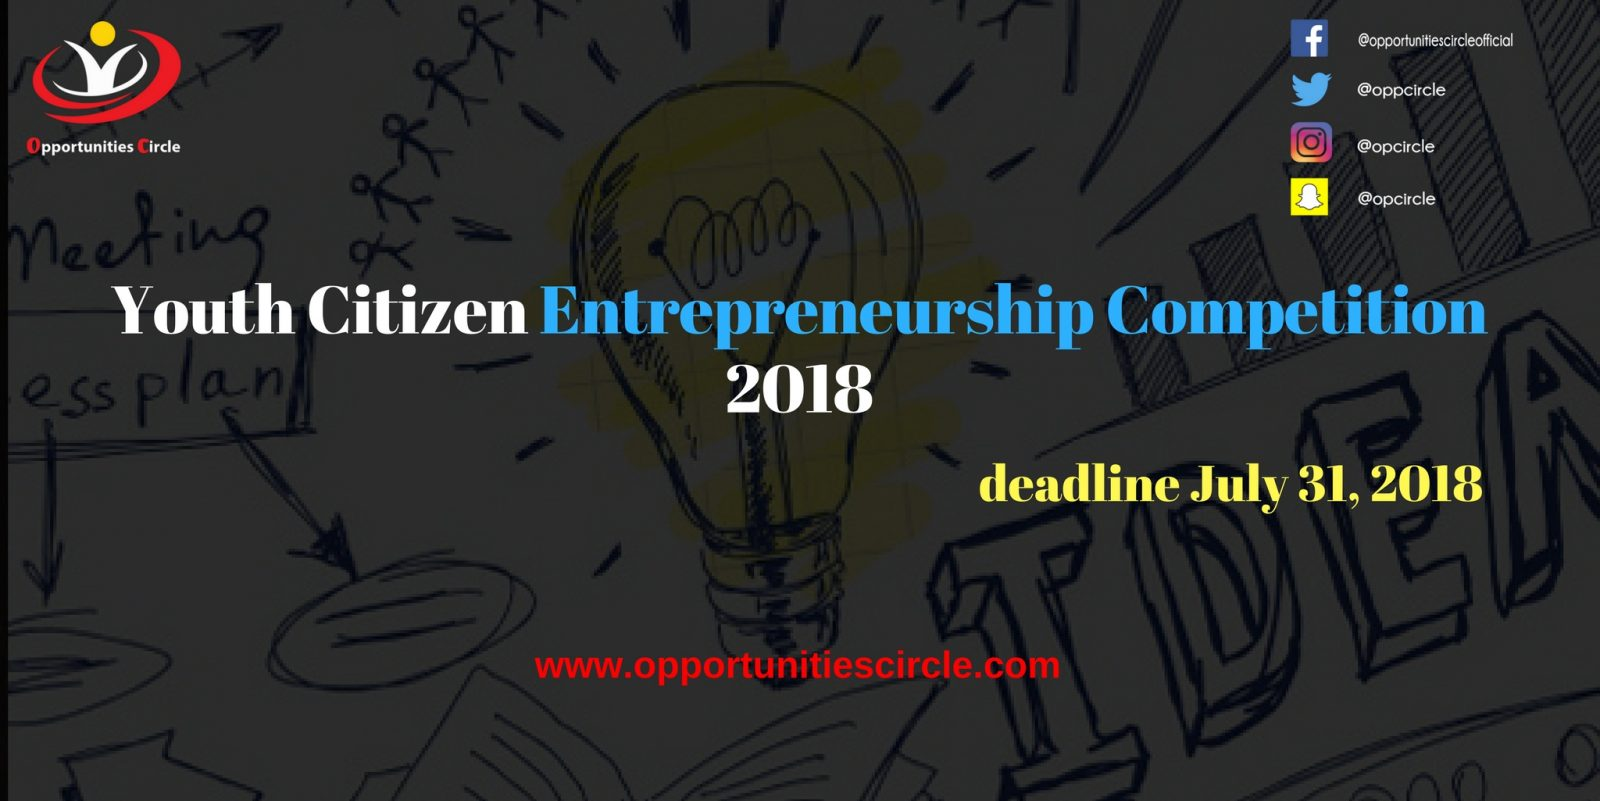 Youth Citizen Entrepreneurship Competition 2018 - Youth Citizen Entrepreneurship Competition 2018